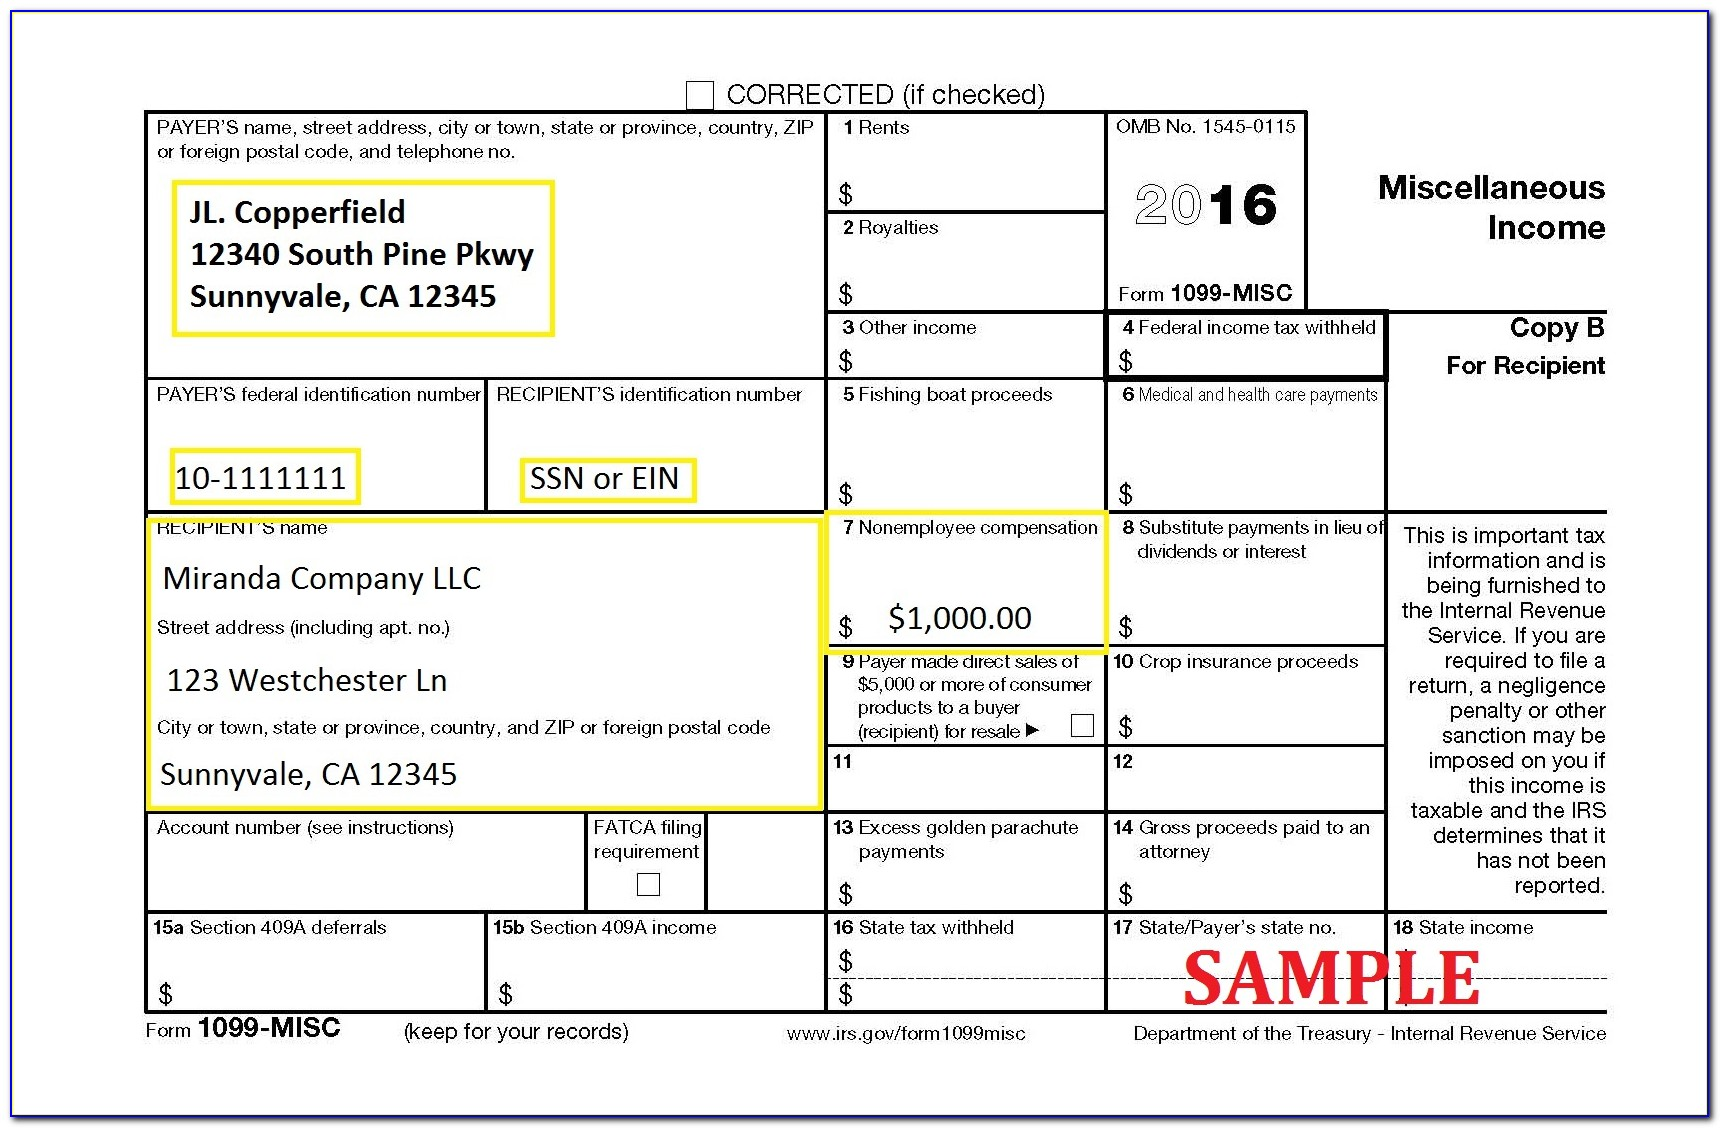 1099 Form Misc 2016